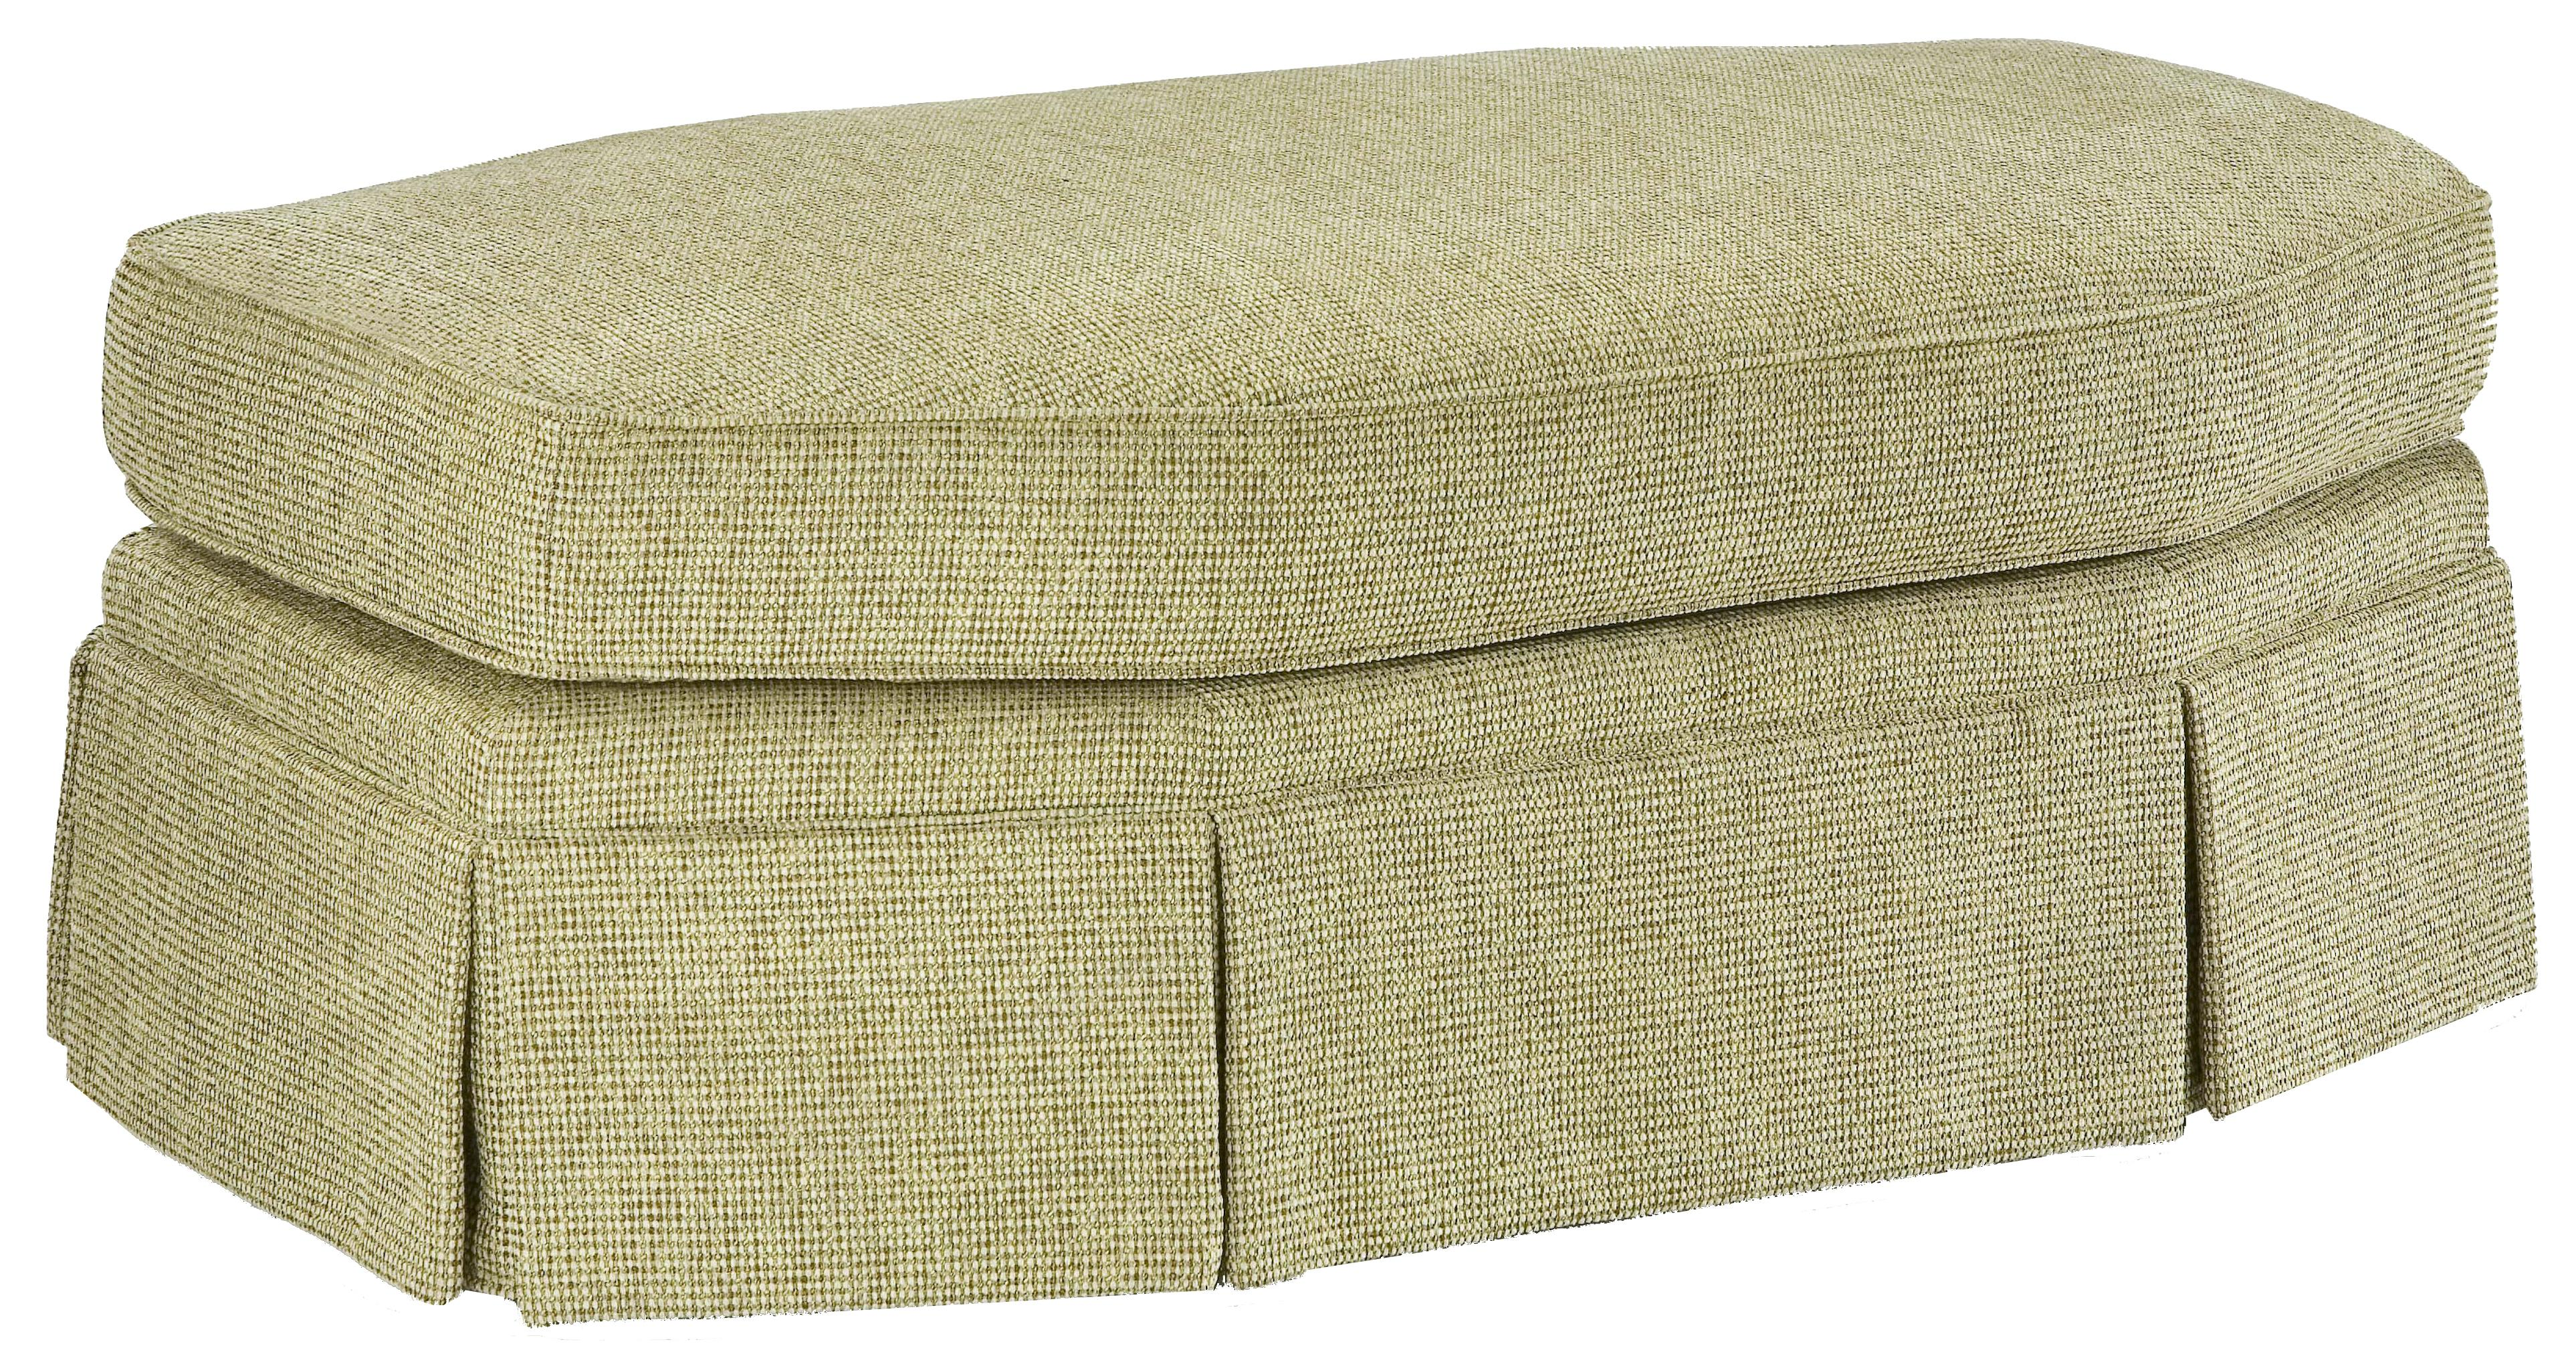 3766 Eight-Sided Oval Ottoman by Fairfield at Story & Lee Furniture